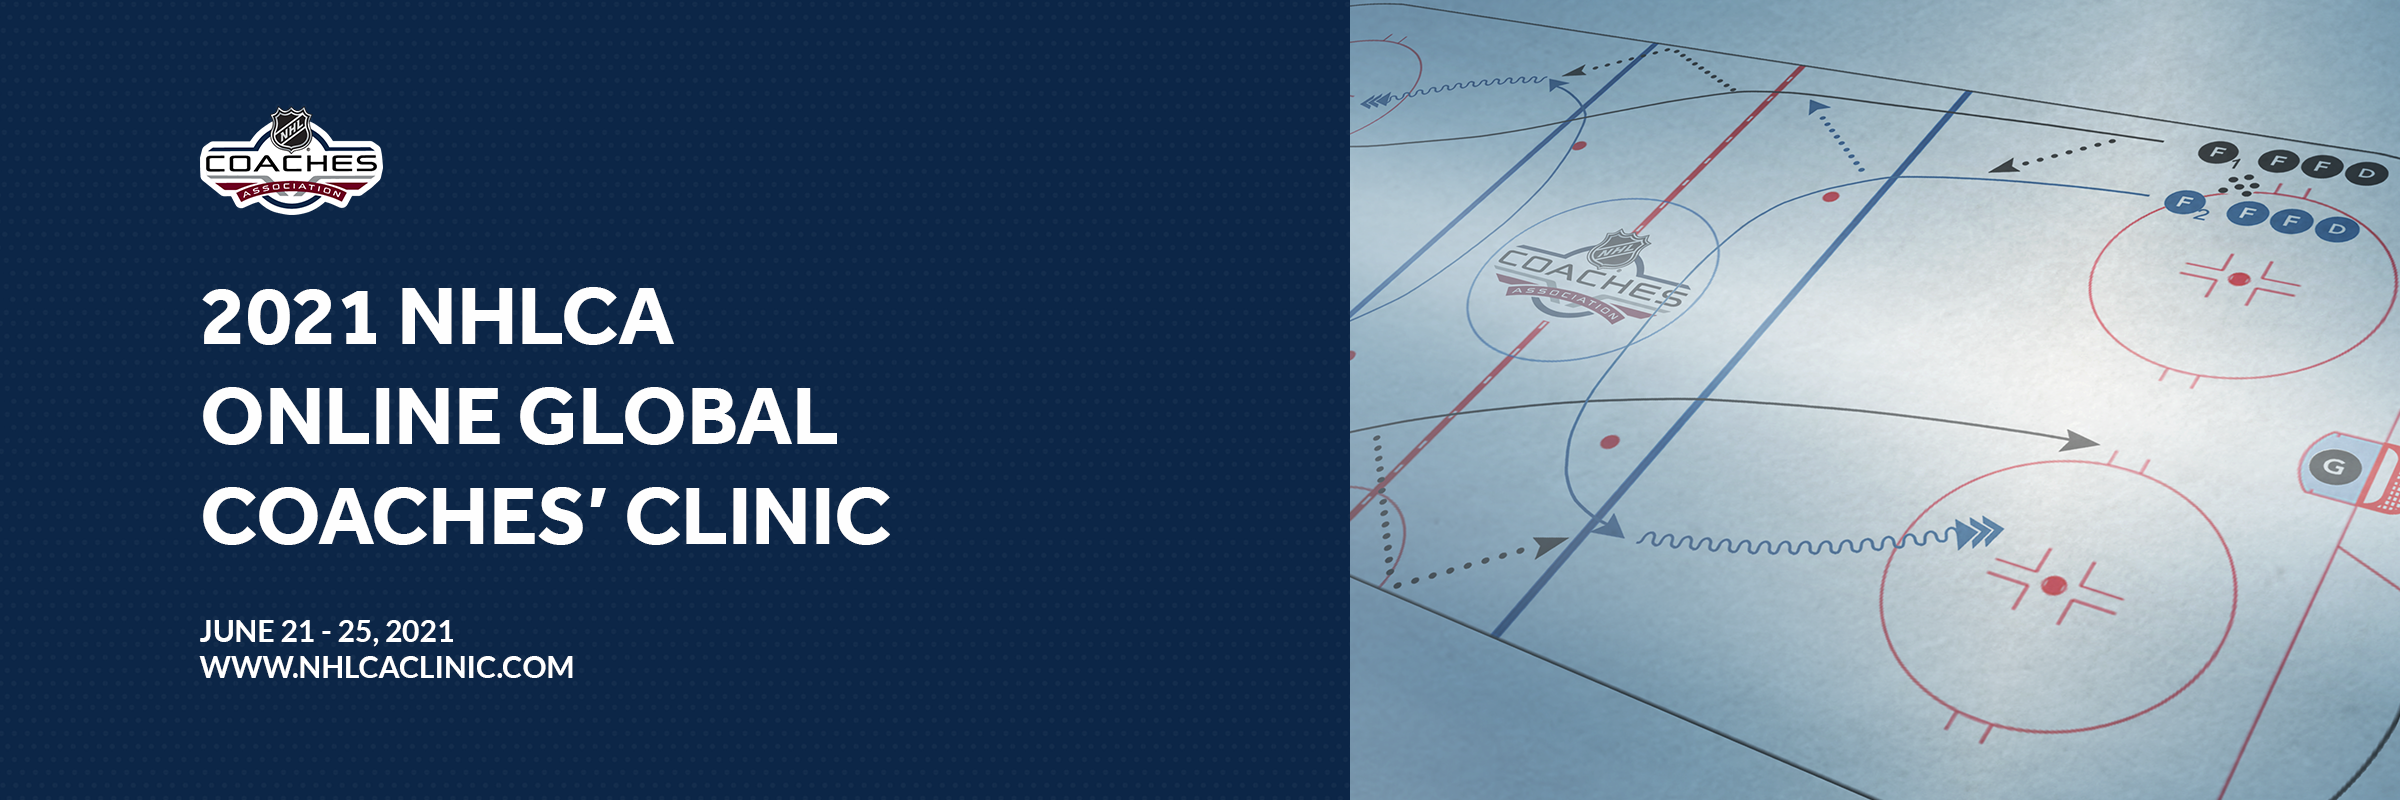 CoachThem at the 2021 NHLCA Online Global Coaches' Clinic